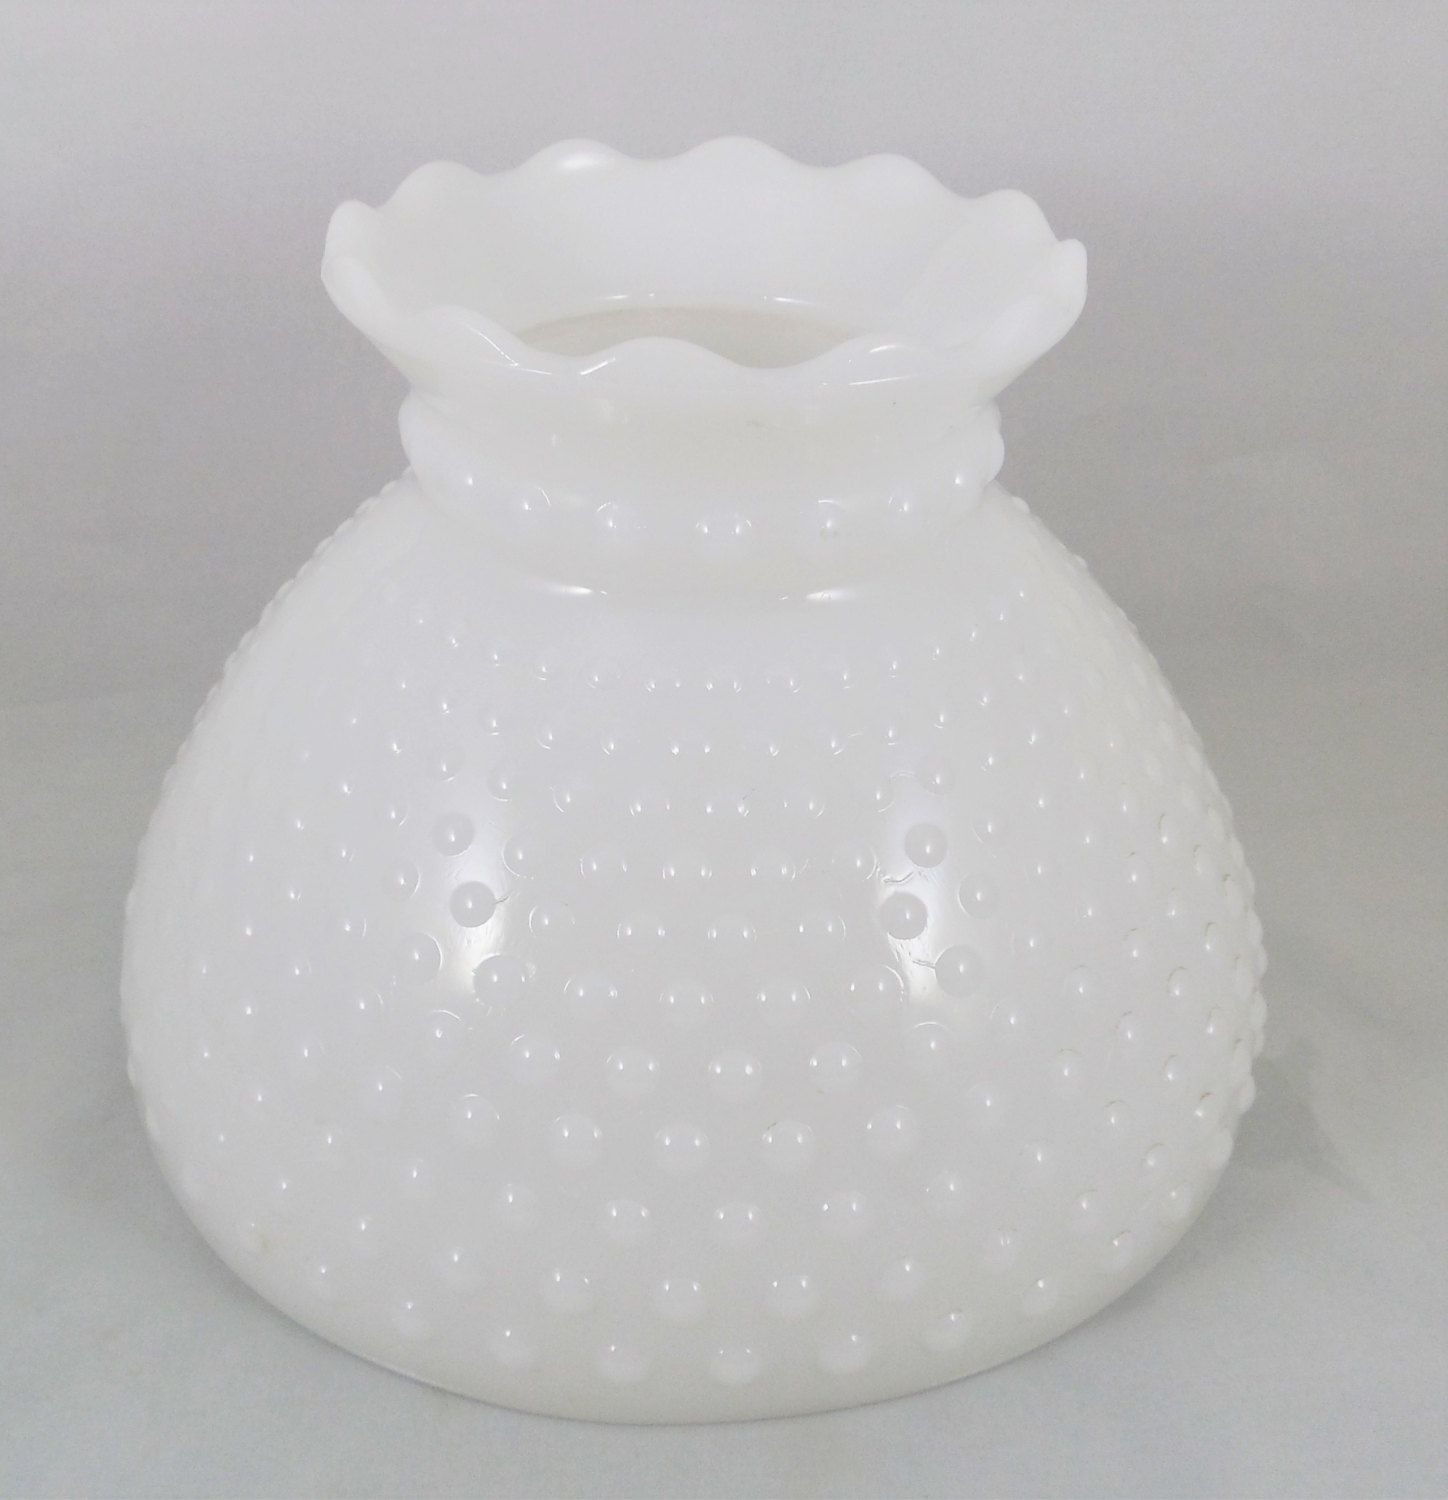 Milk glass hobnail lampshade 8 fitter vintage student style glass milk glass hobnail lampshade 8 fitter vintage student style glass lamp shade replacement mozeypictures Image collections